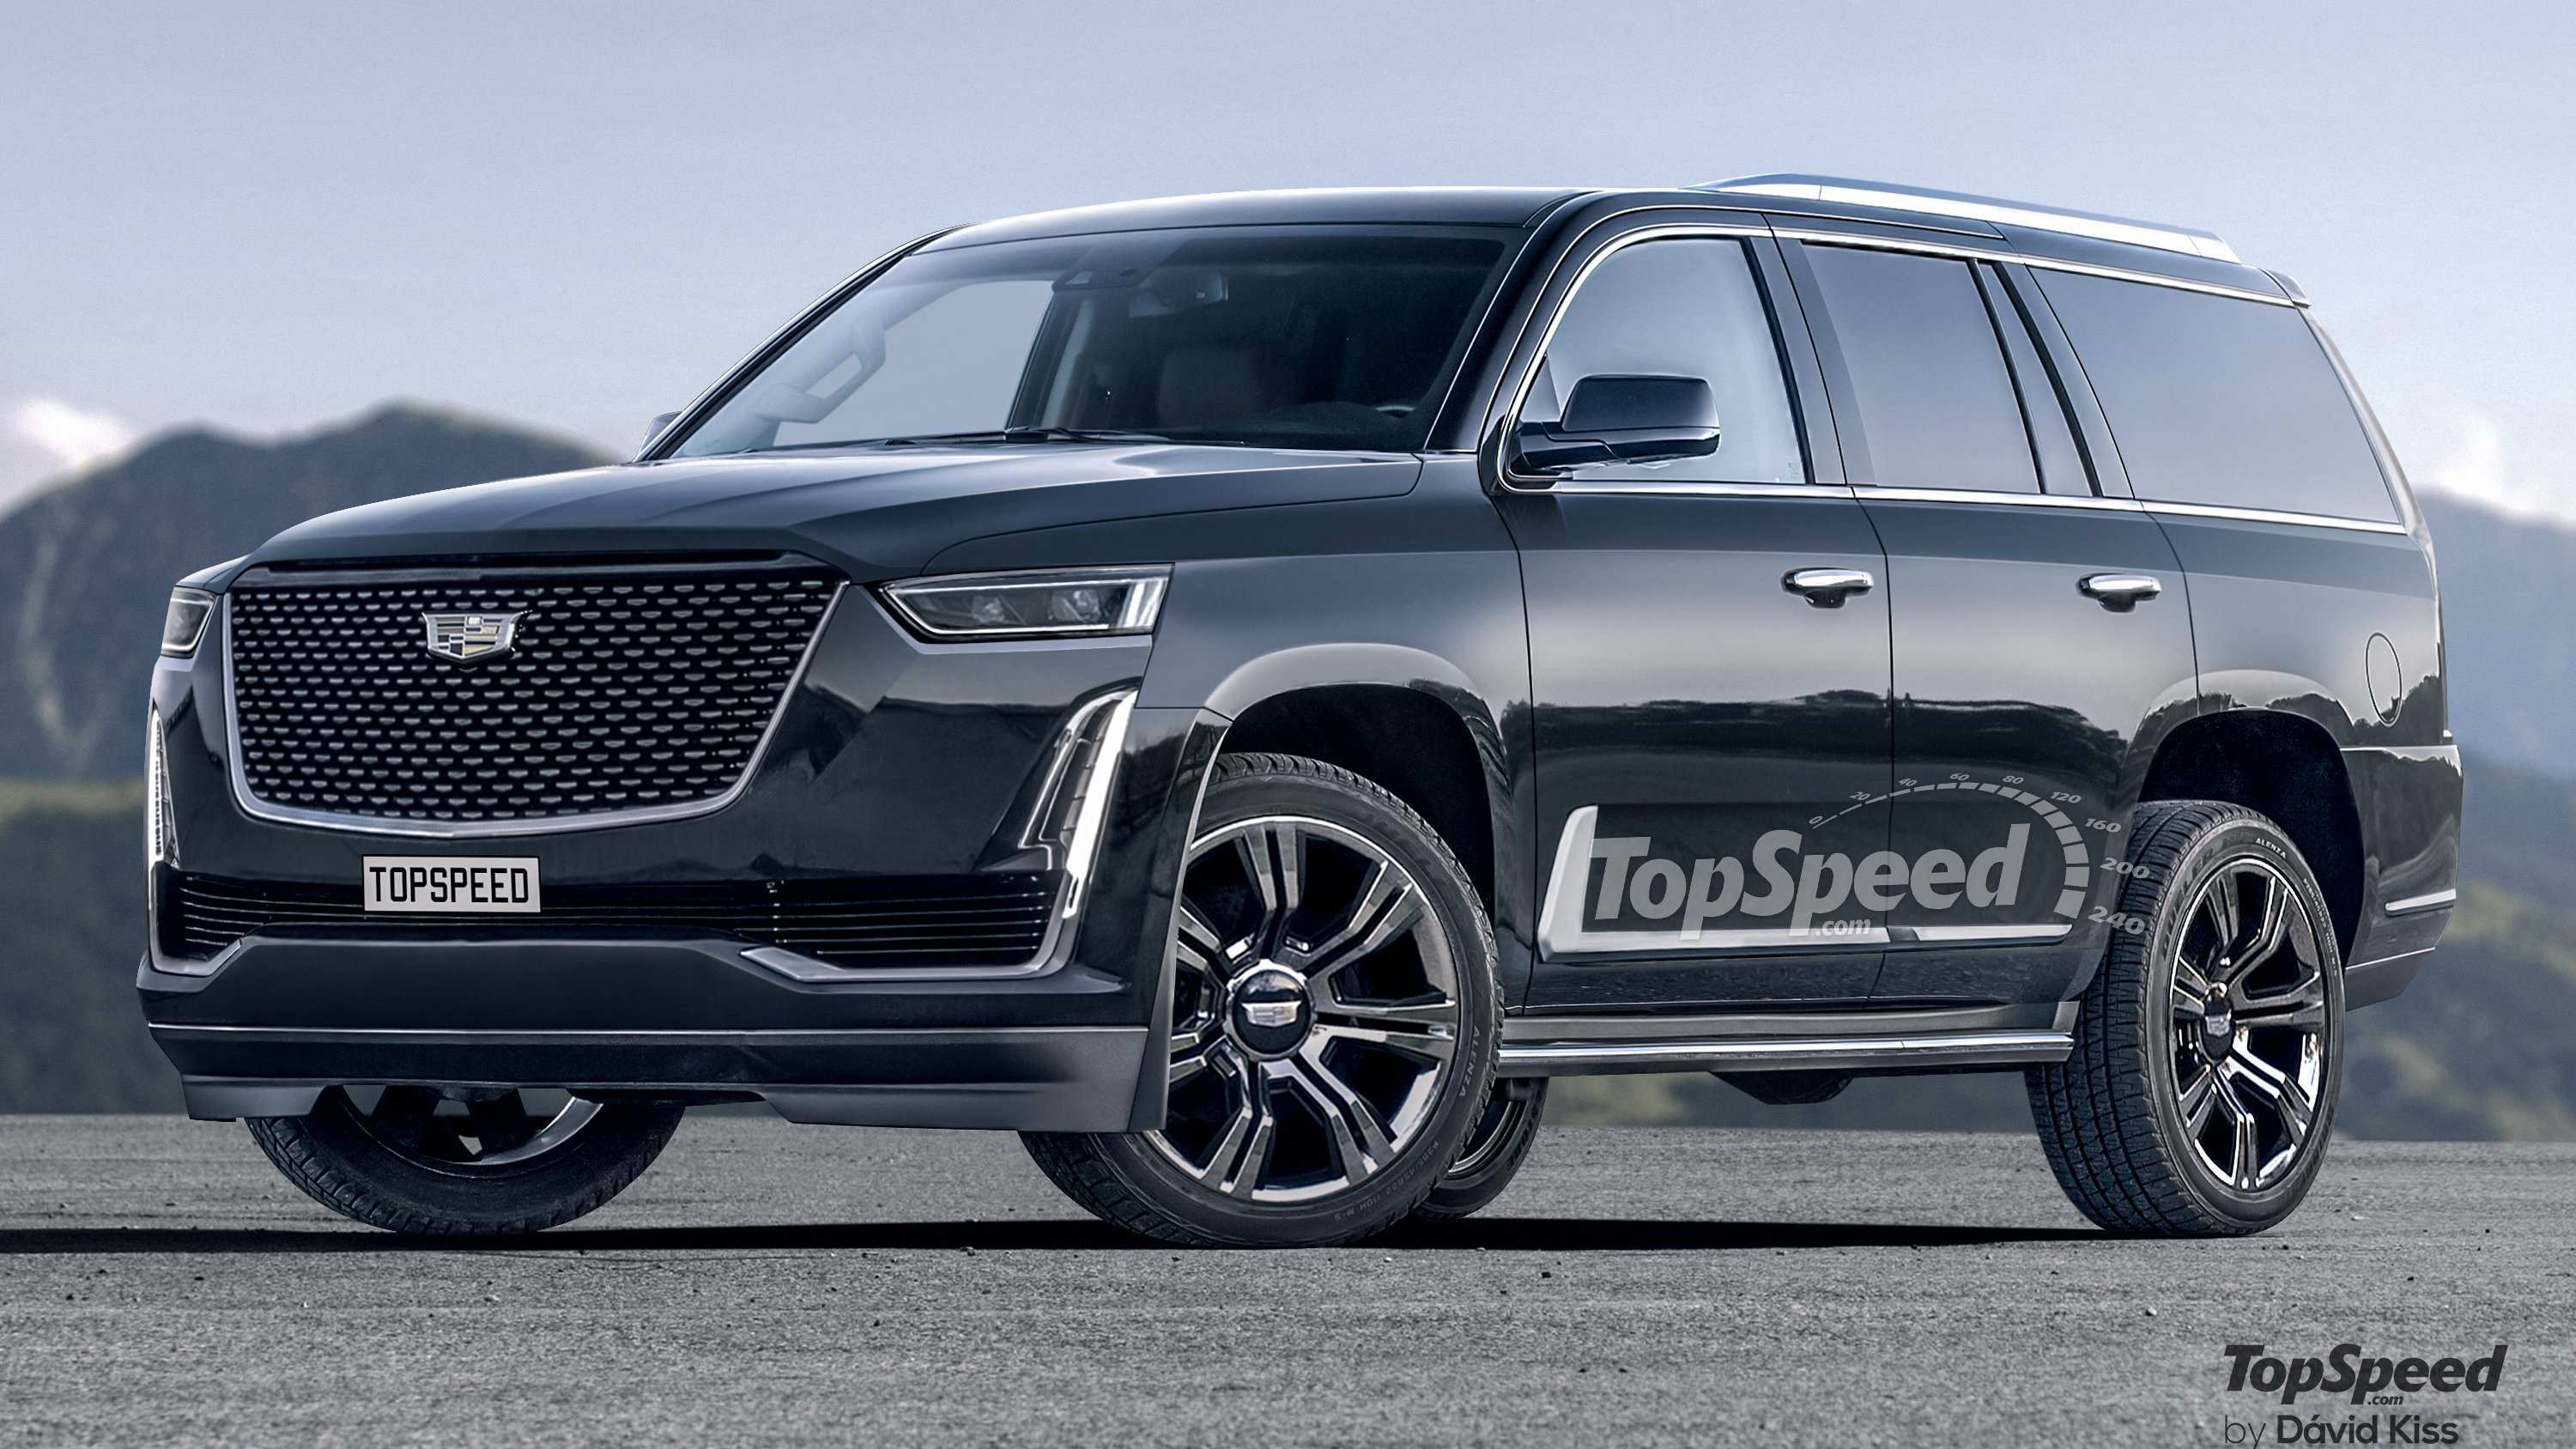 65 The 2020 Cadillac Escalade Luxury Suv Style with 2020 Cadillac Escalade Luxury Suv